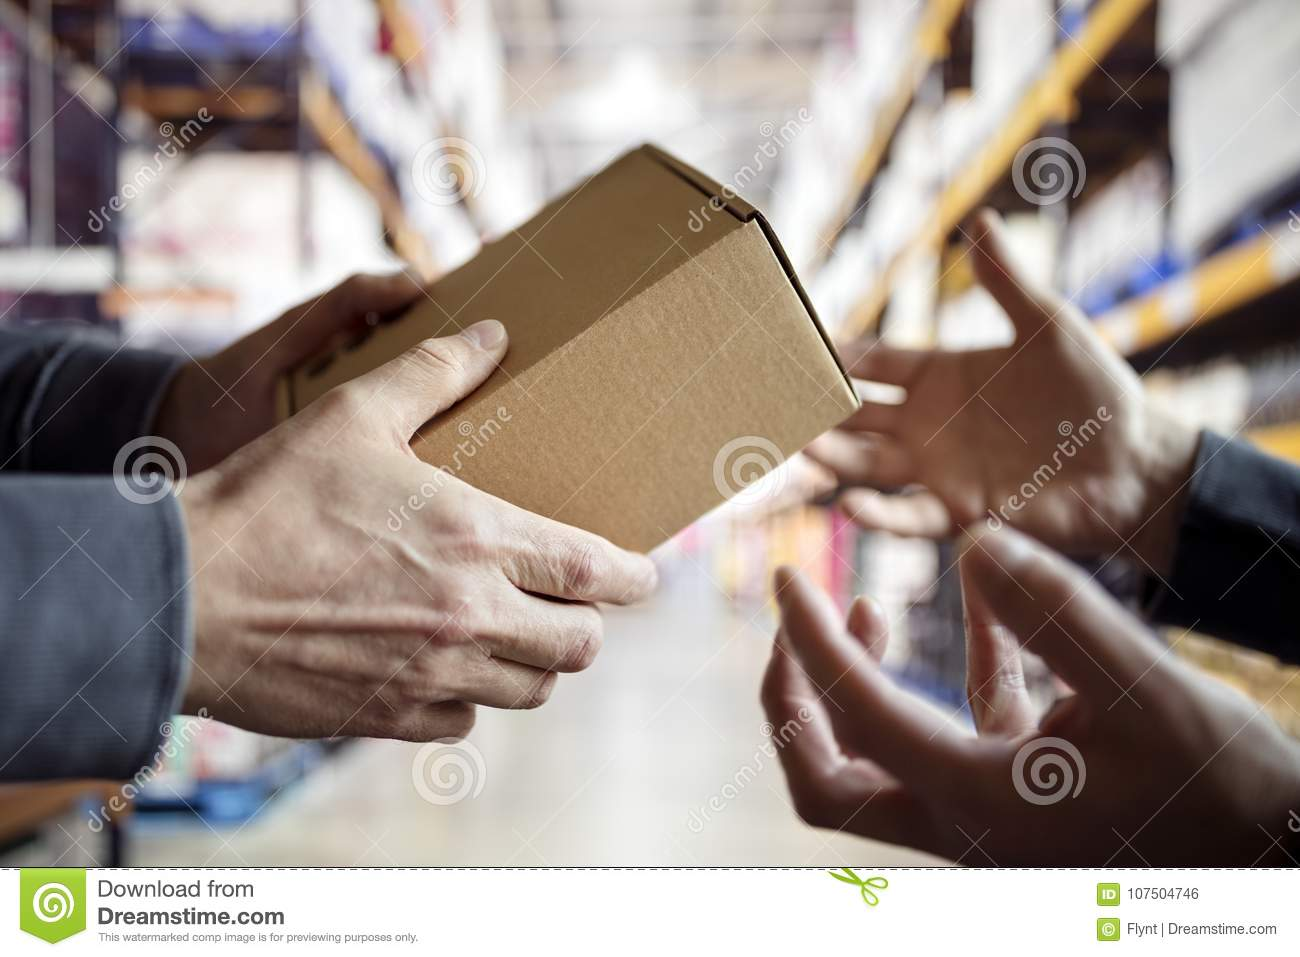 Worker with package in a distribution warehouse